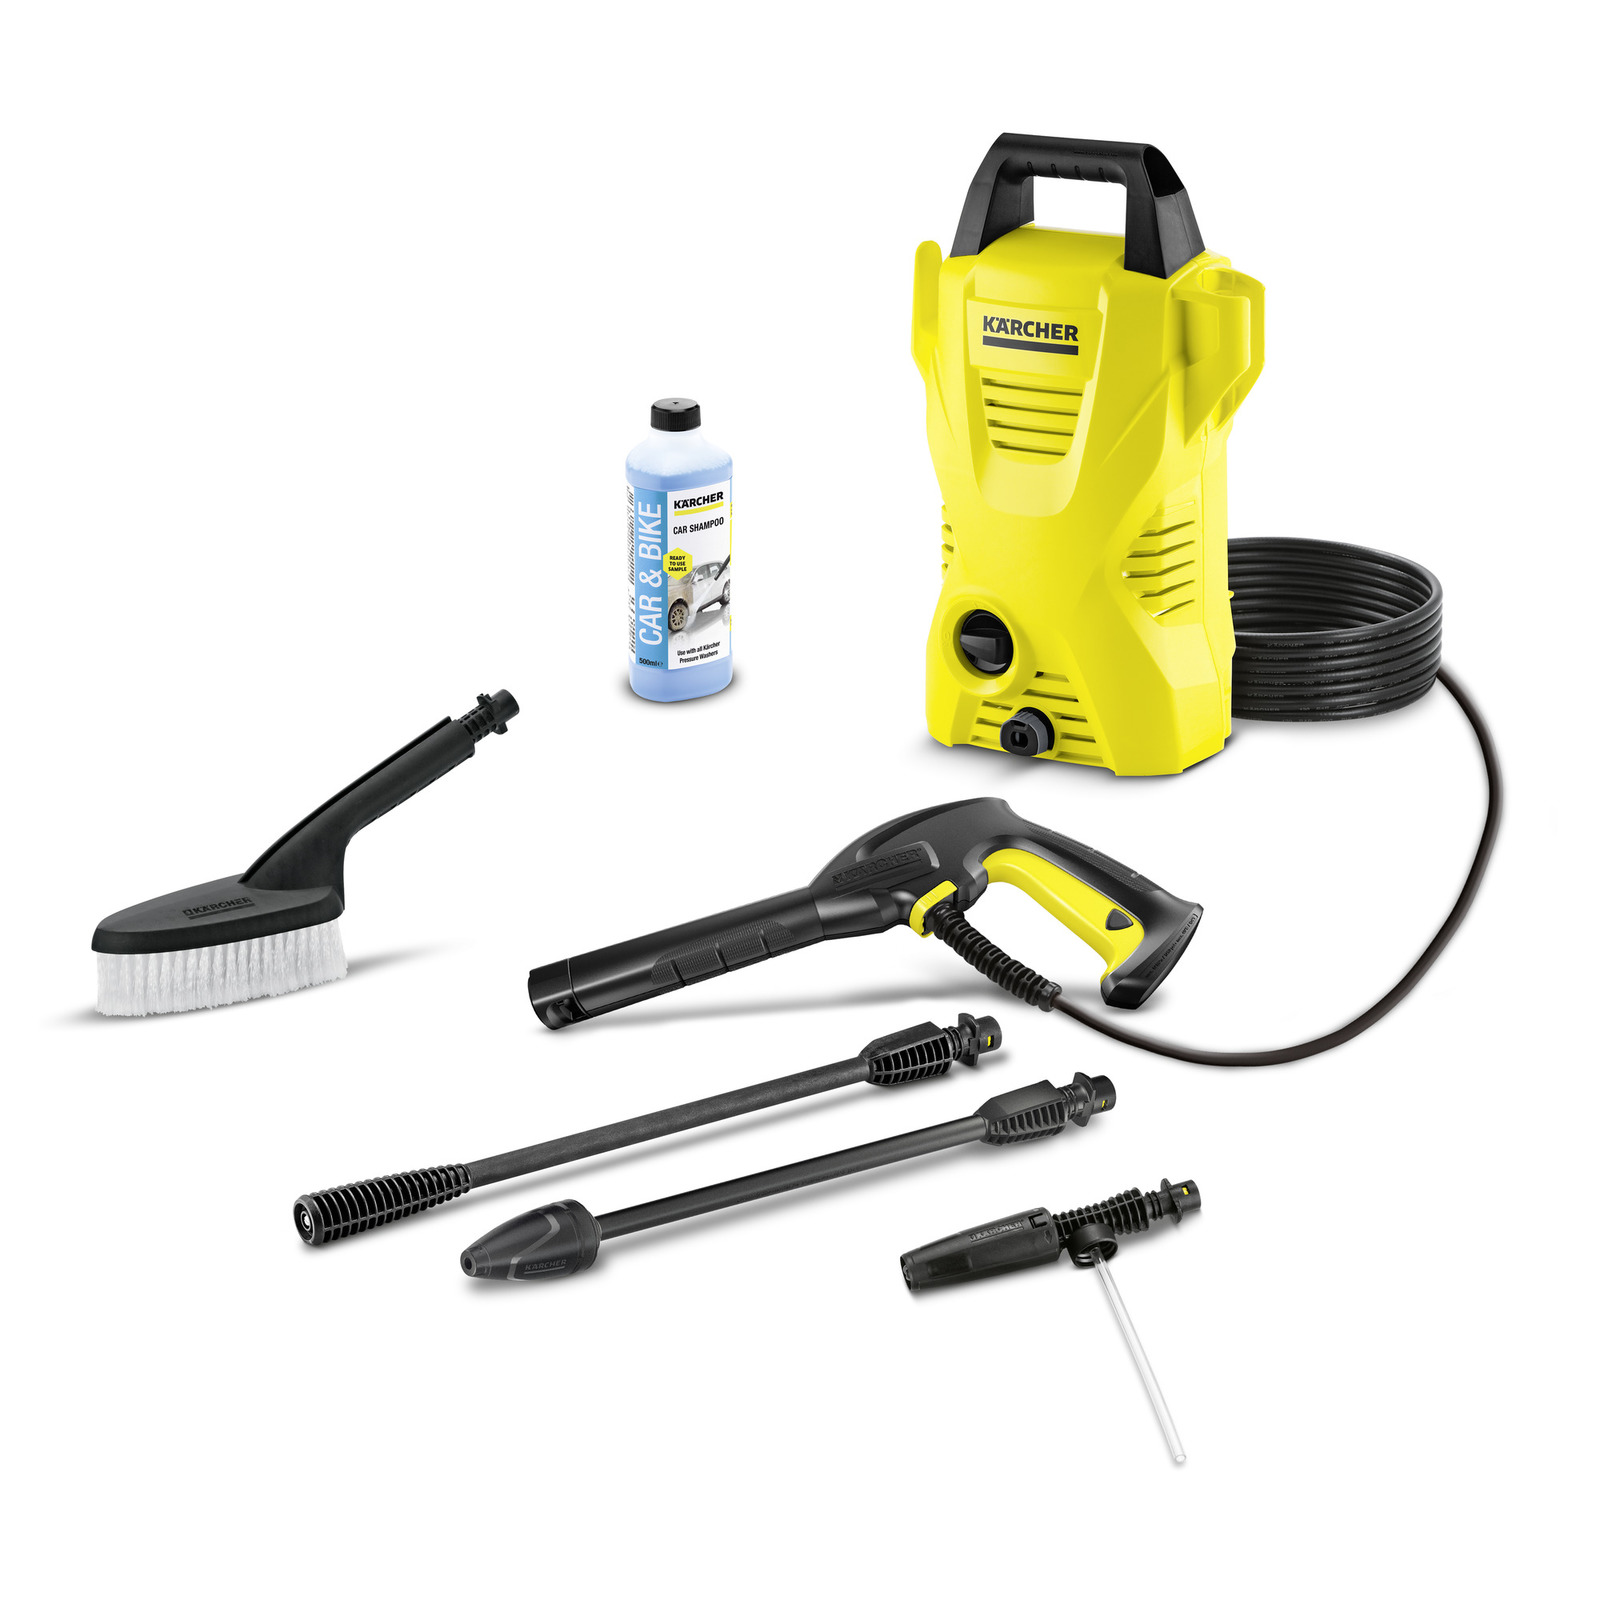 Lot 30604 - V Brand New Karcher K2 Compact Car High Pressure Cleaner With Wash Brush - Foam Nozzle & Car Shampoo